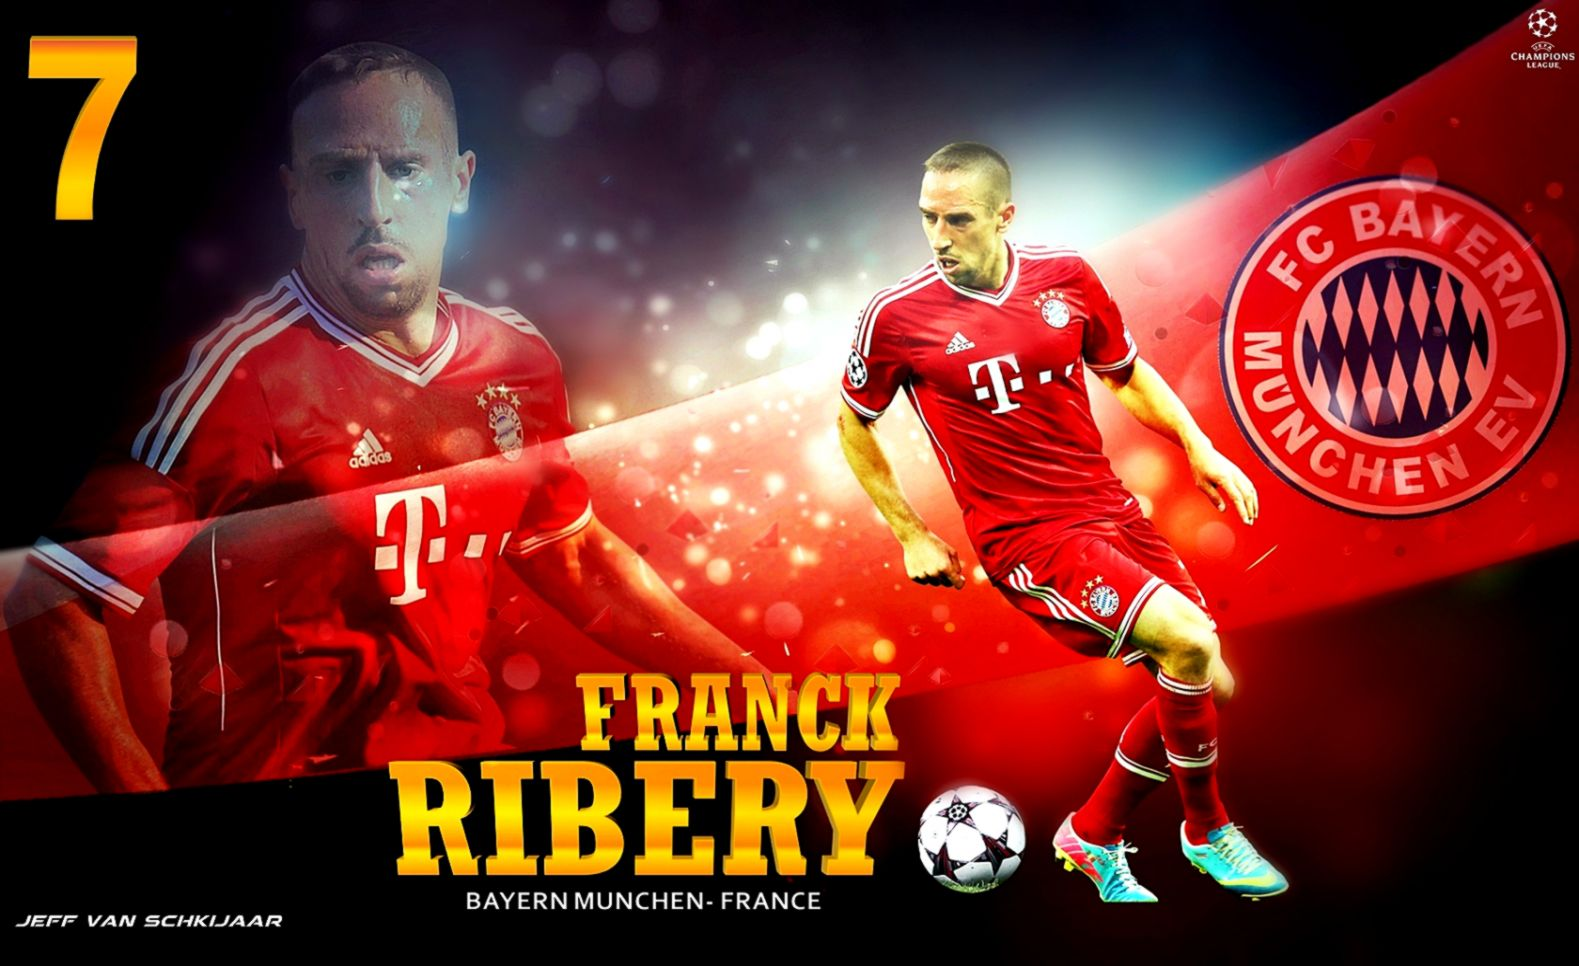 Fc bayern munich wallpaper wallpapers for desktop fc bayern munich wallpaper surprising voltagebd Image collections